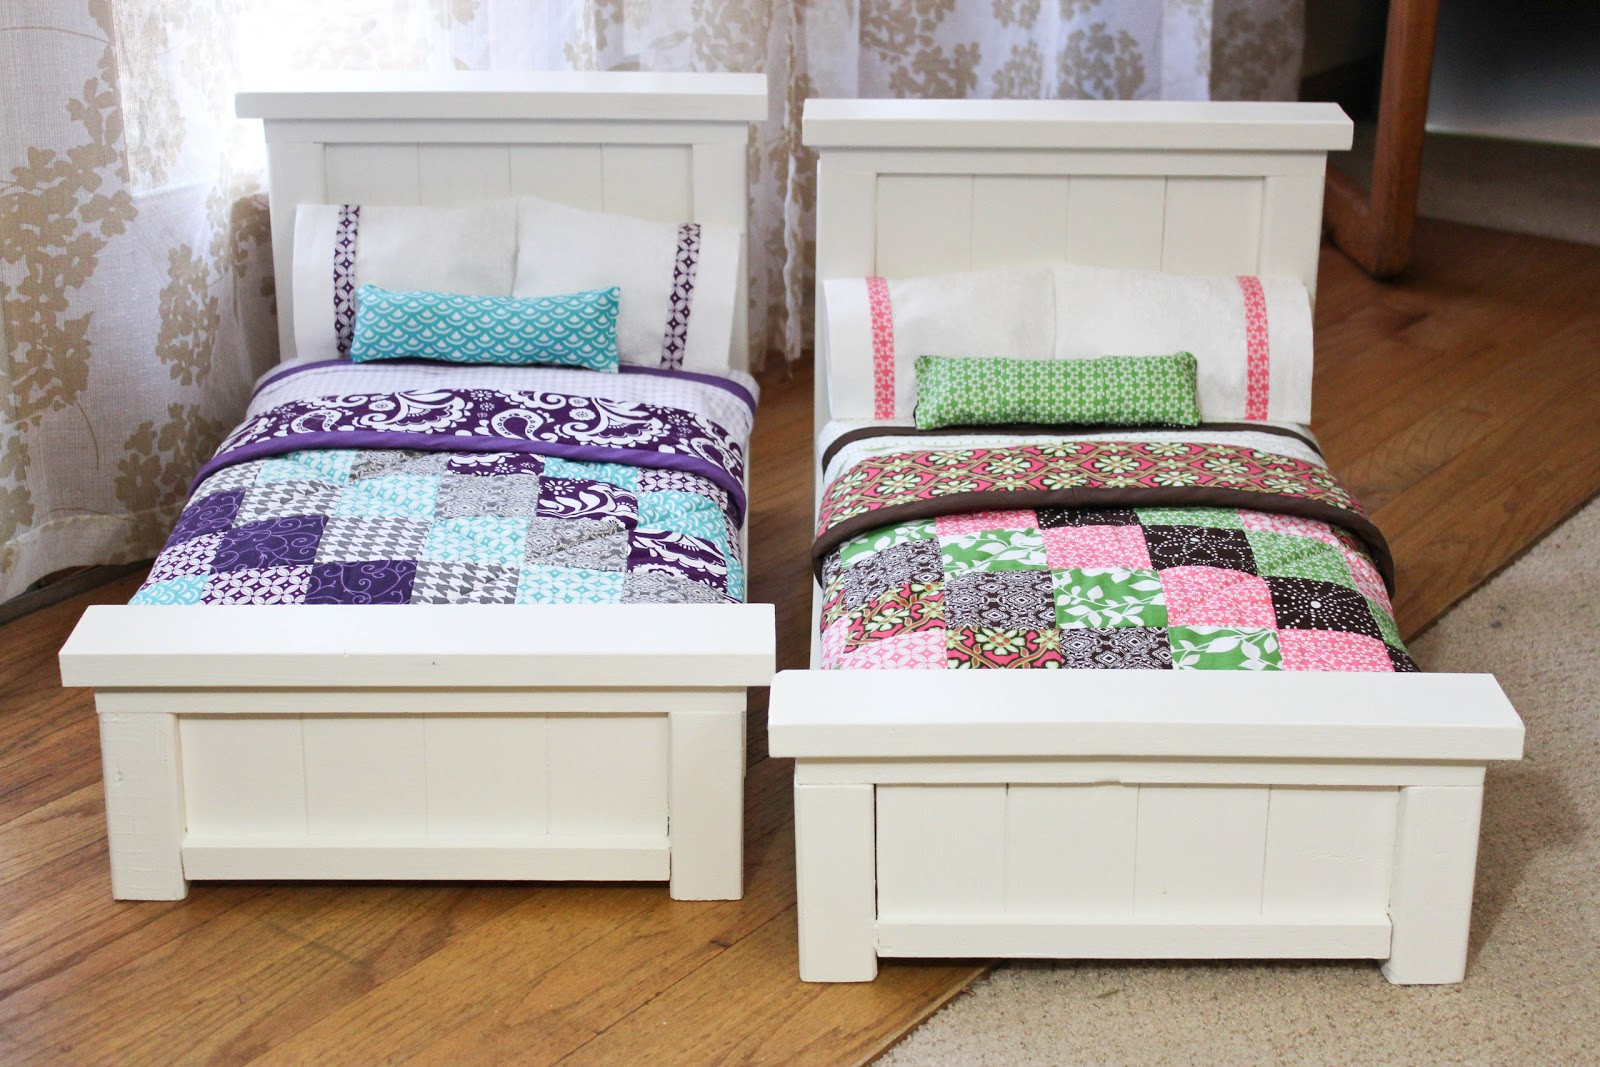 Best ideas about DIY Dolls Furniture . Save or Pin From Dahlias to Doxies DIY Doll Beds and Tiny Quilts Now.